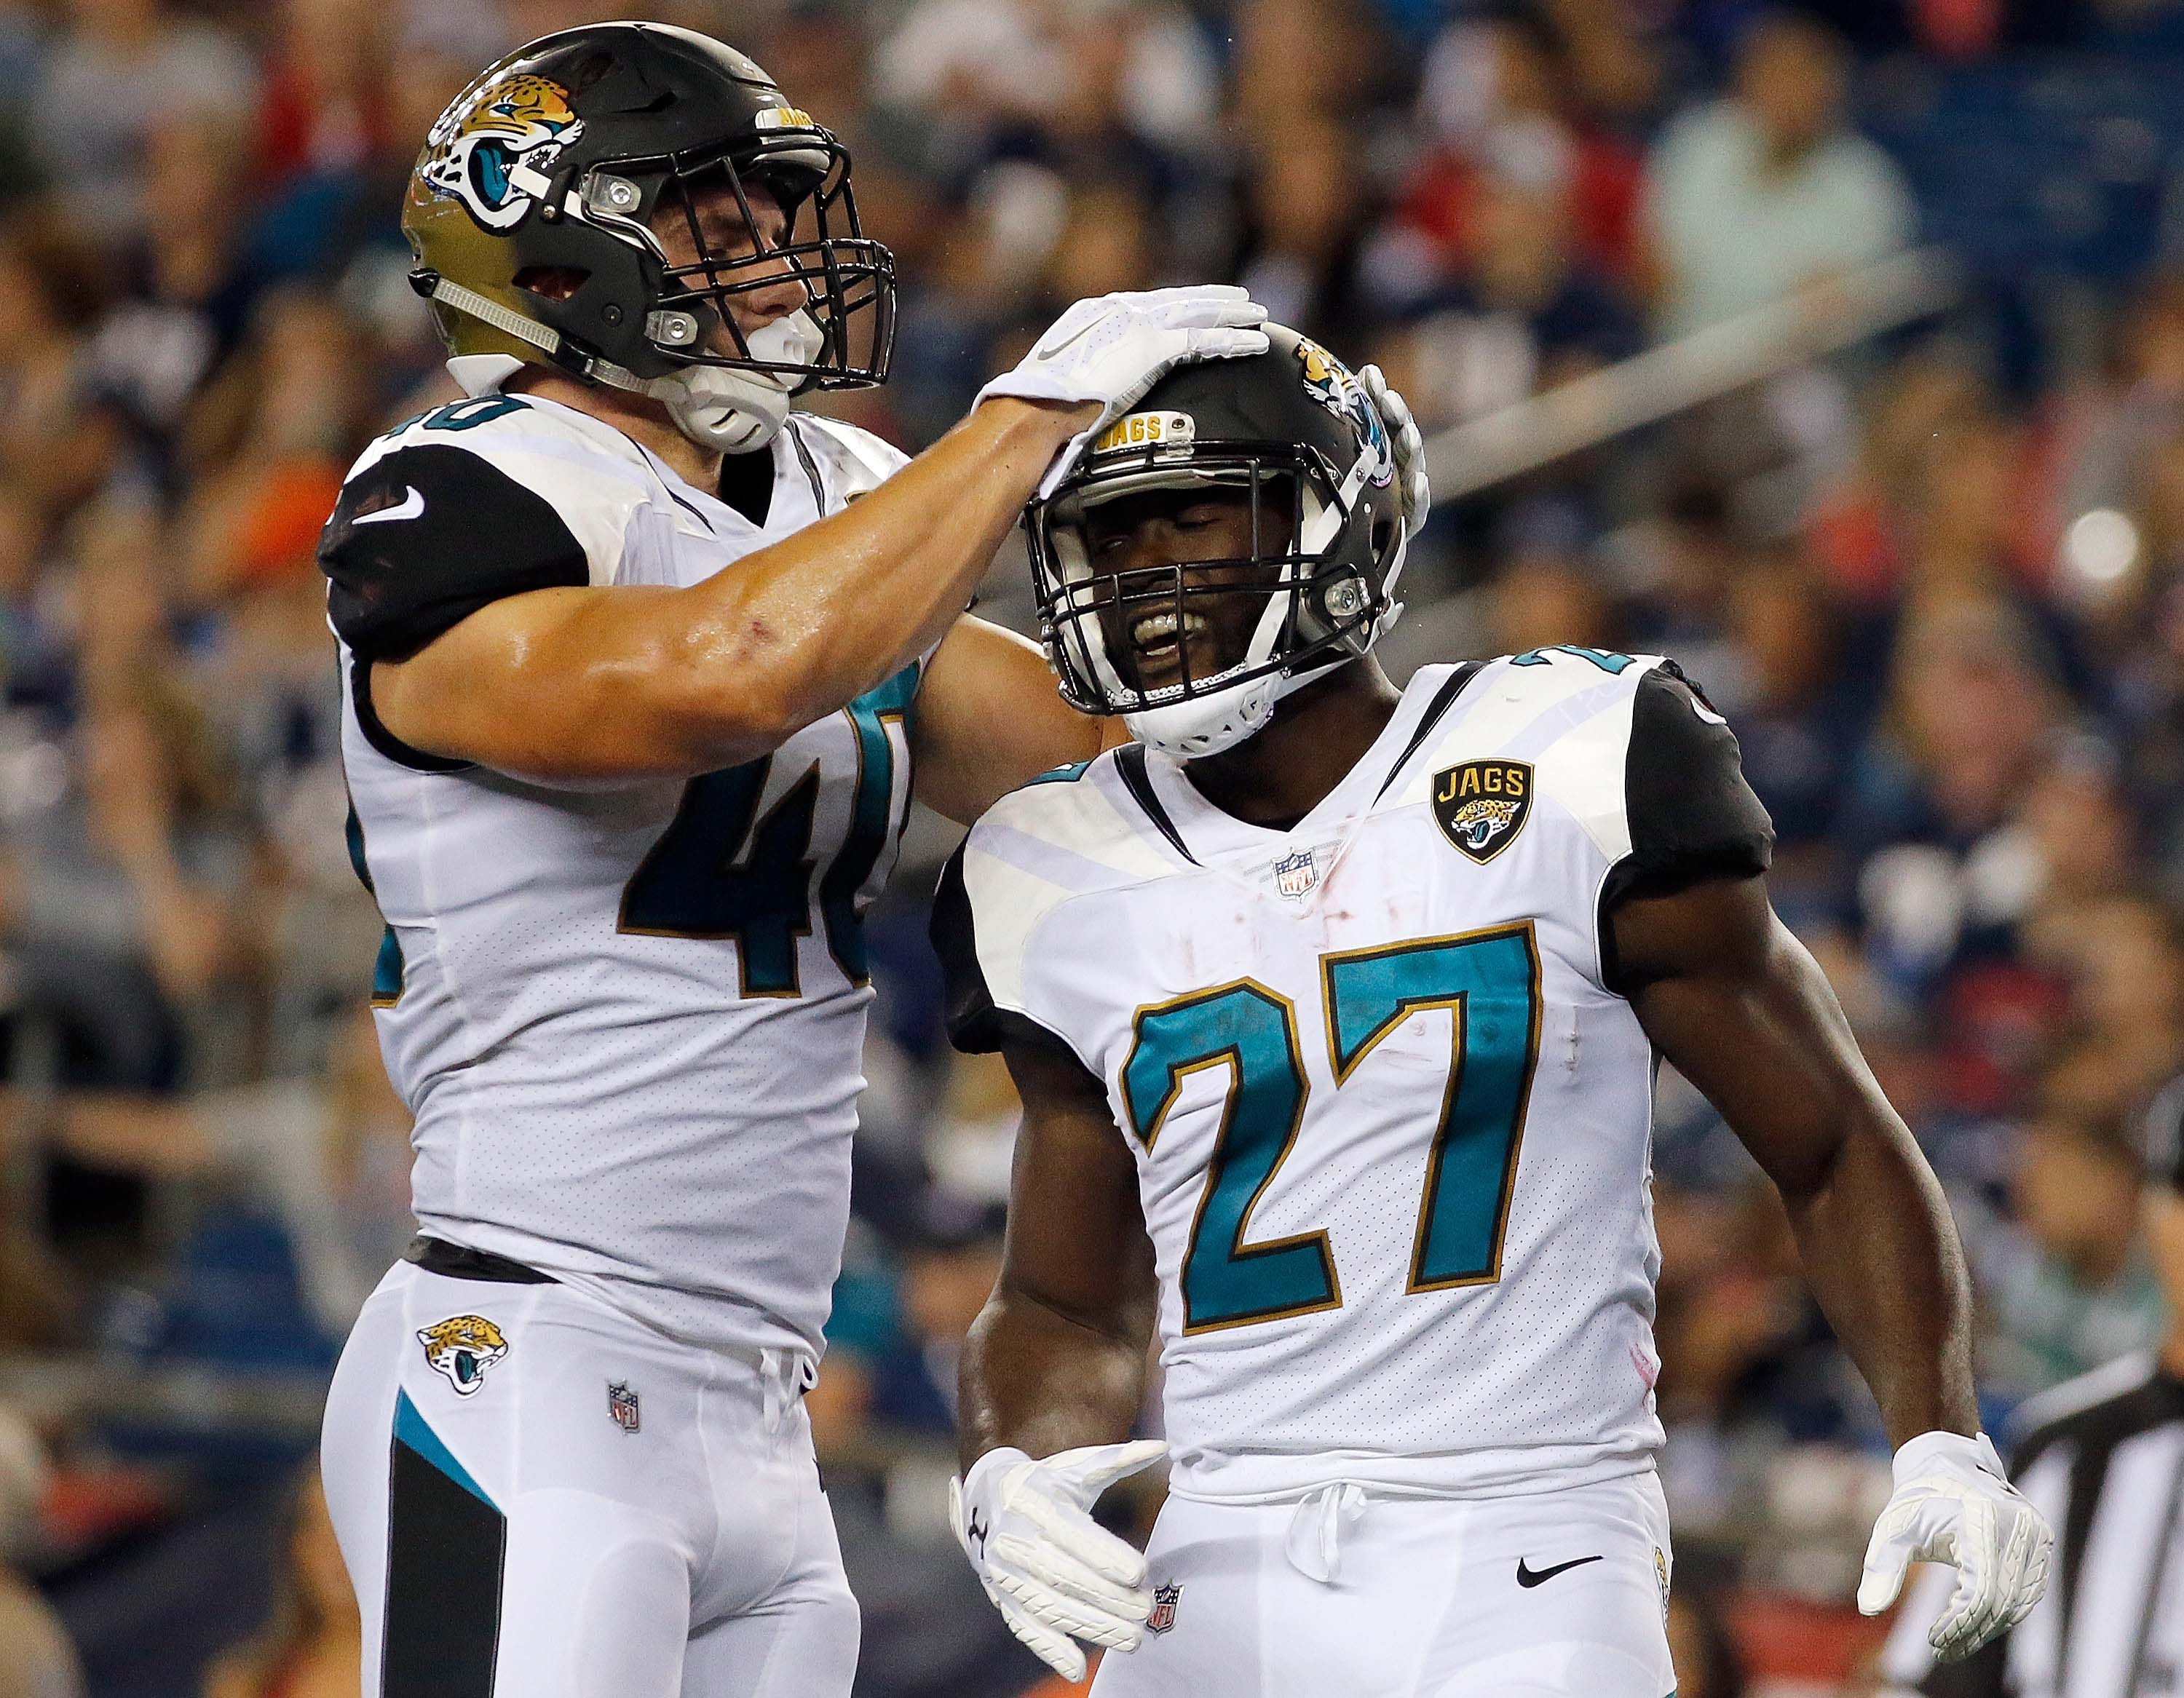 Blake Bortles on Patriots defense: 'They mess with you'